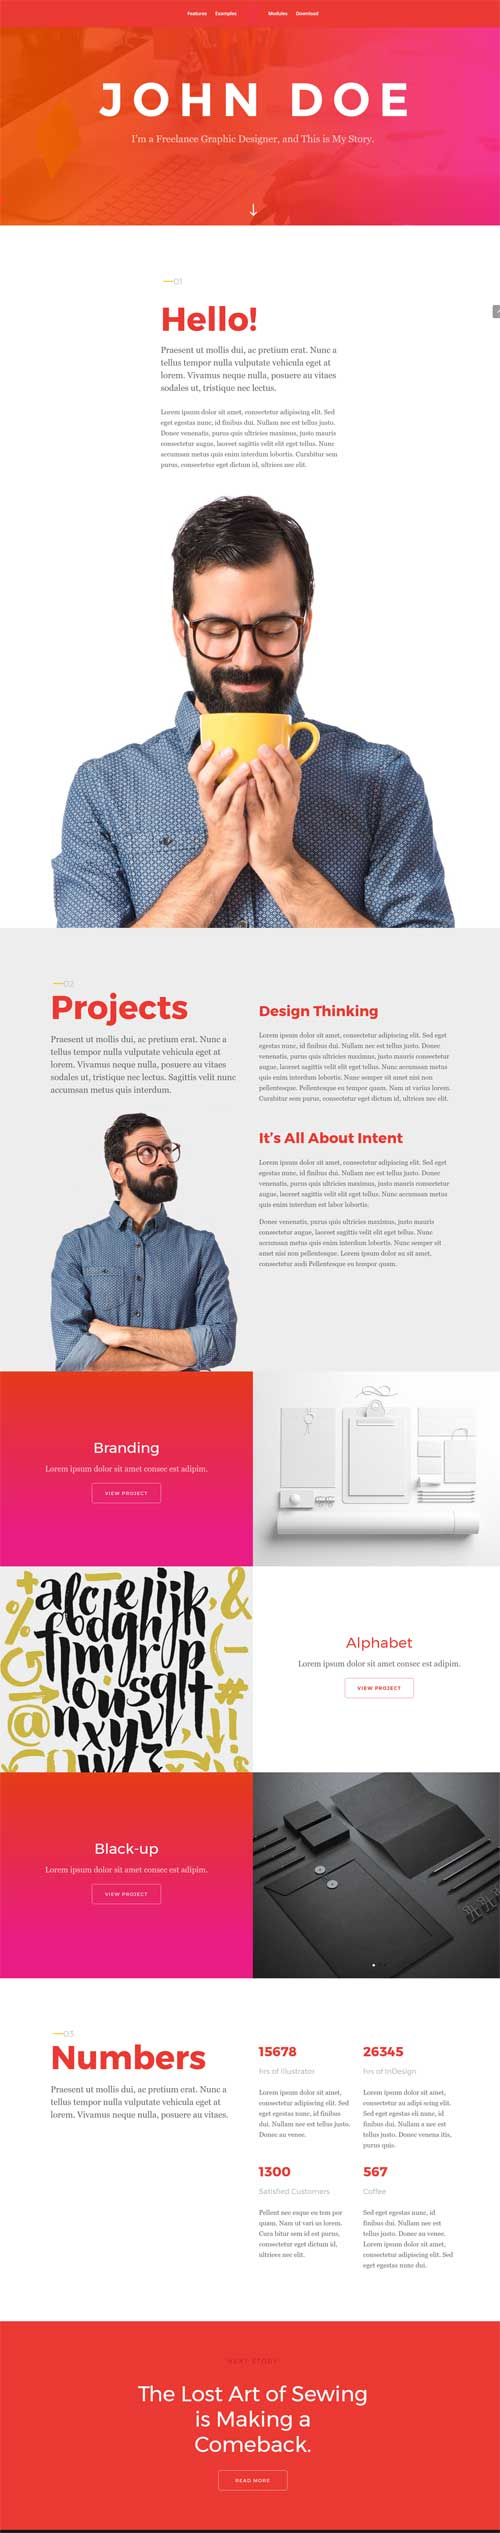 Elegant-themes-demo-11